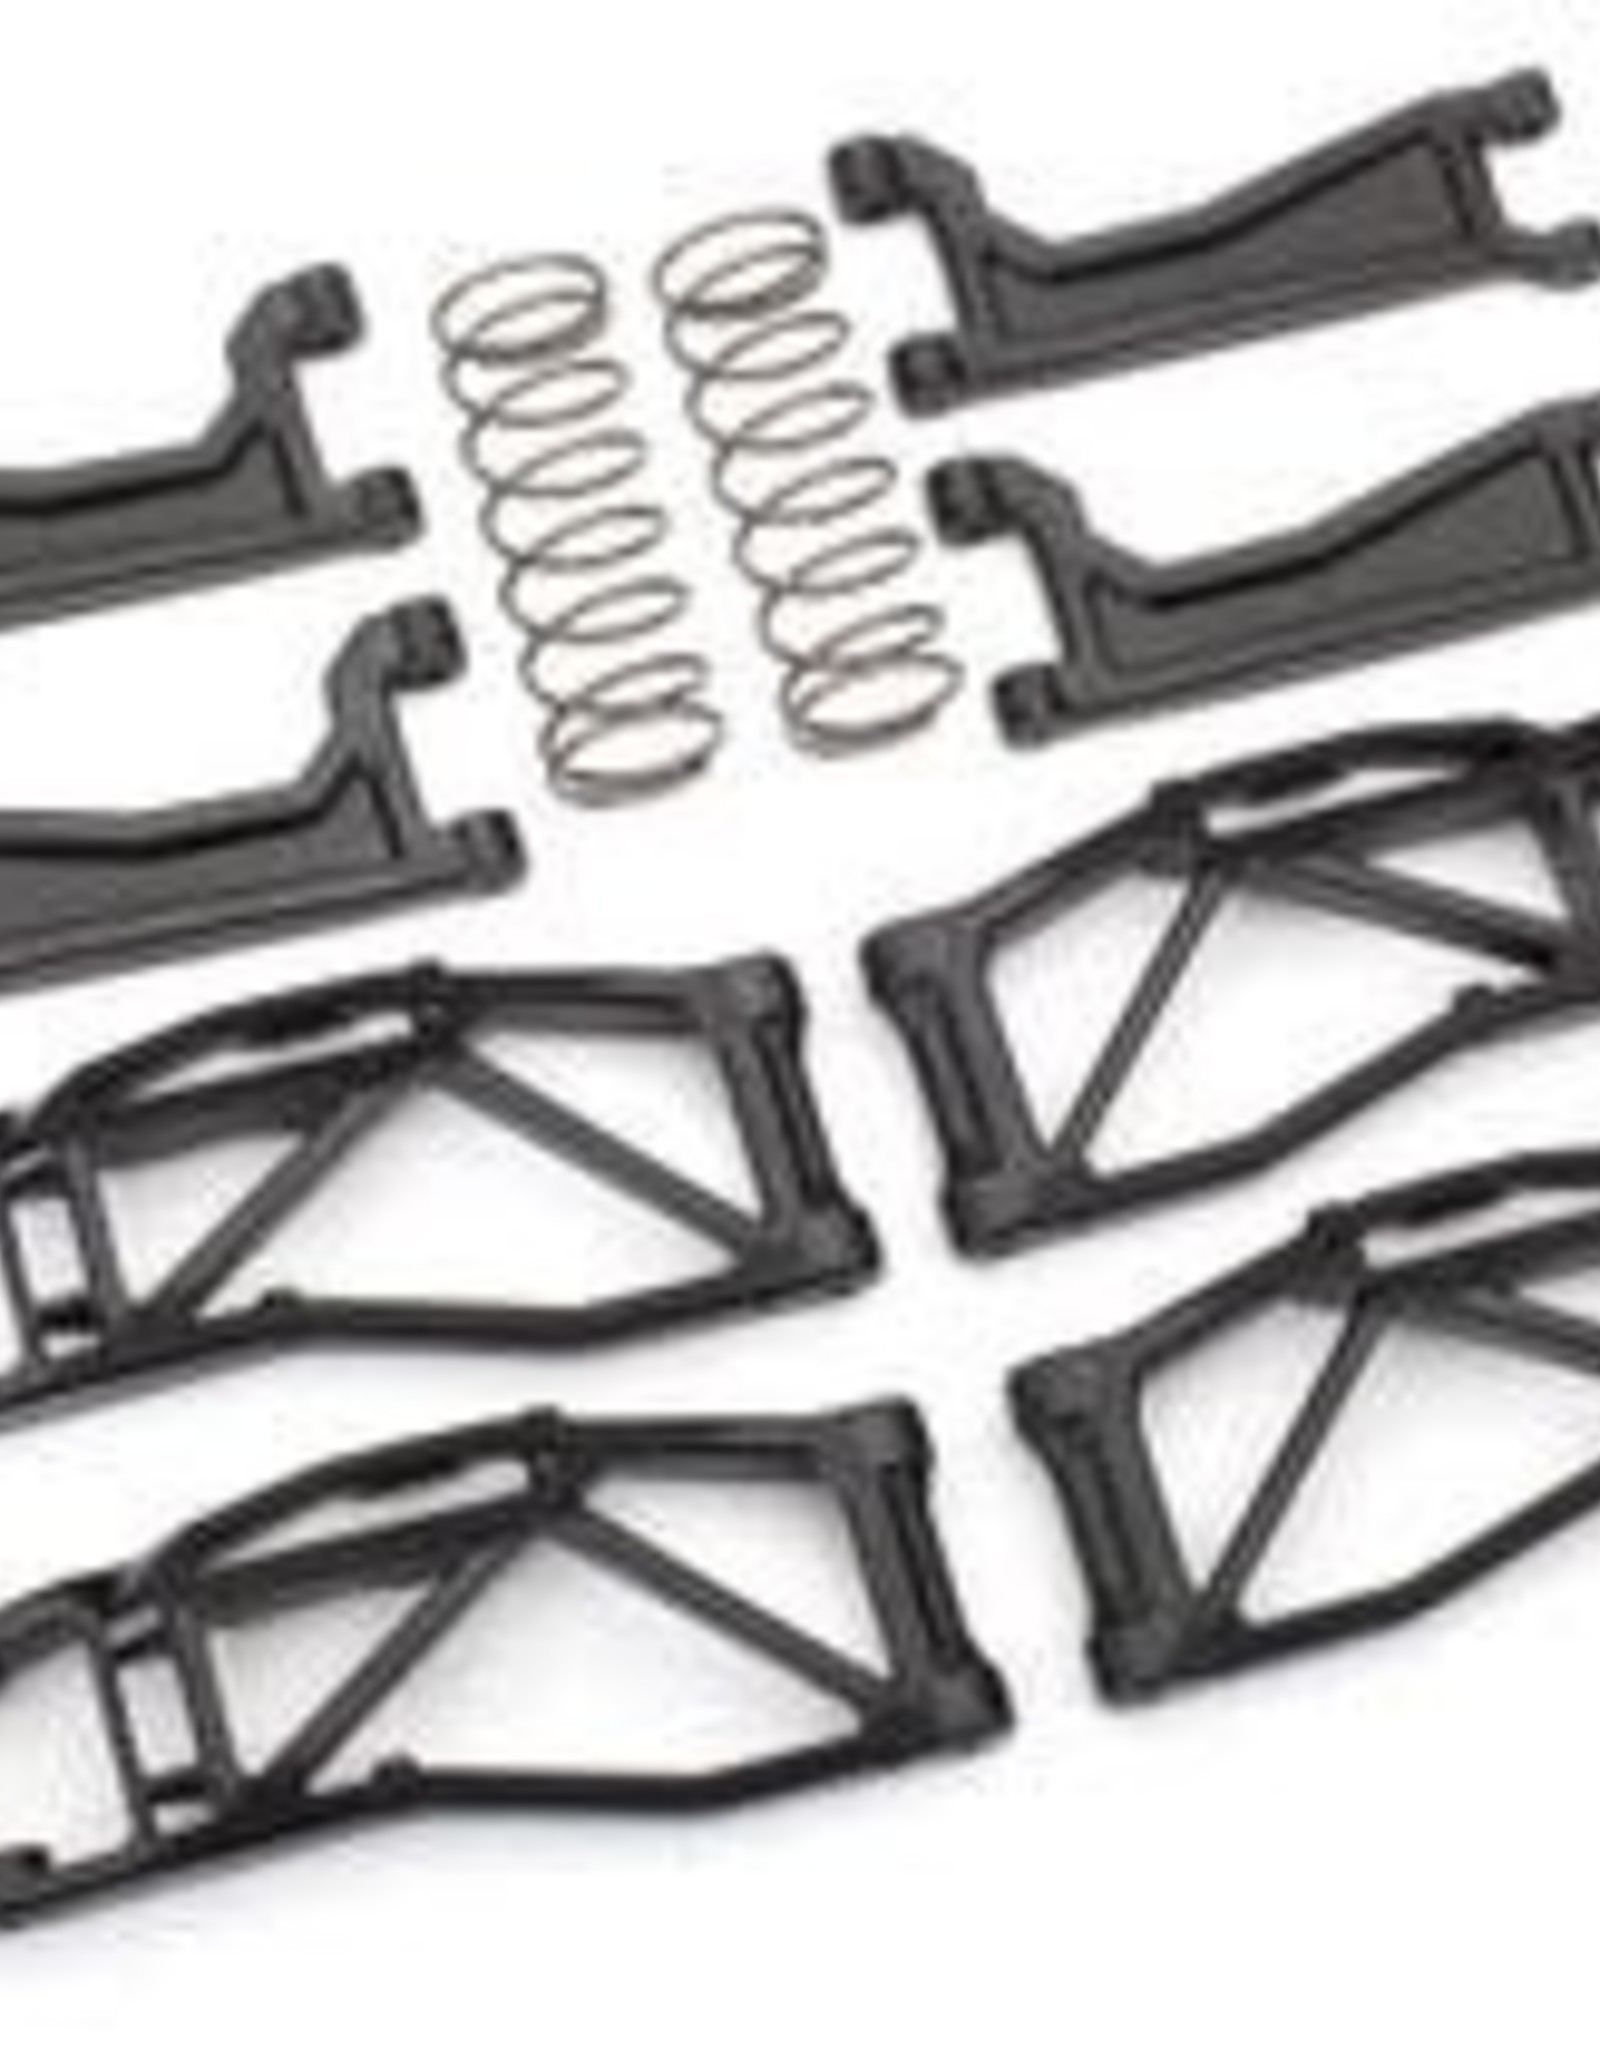 TRAXXAS Suspension kit, WideMaxx™, black (includes front & rear suspension arms, front toe links, rear shock springs)